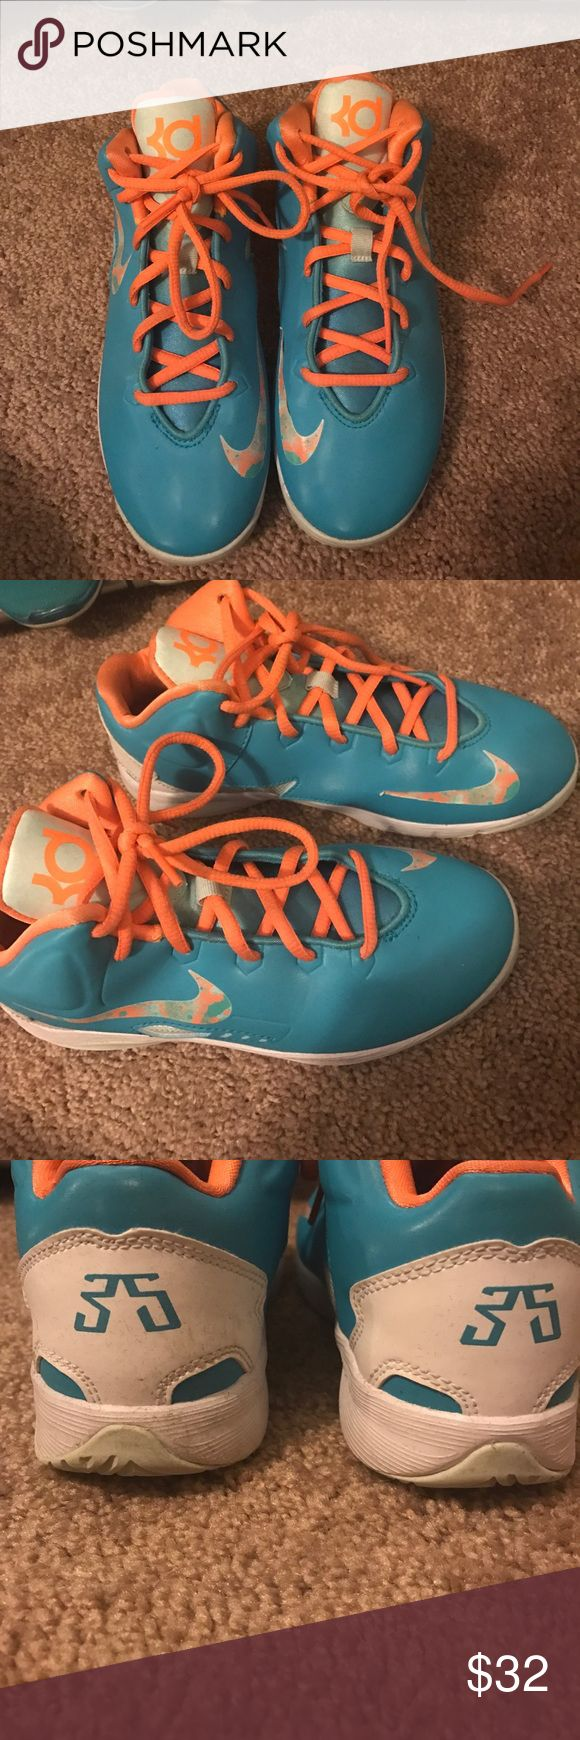 Nike KD basketball shoes Miami dolphins colored KD shoes, Kevin Durant , good condition other than the last photo partial of the Nike check is coming off Nike Shoes Sneakers